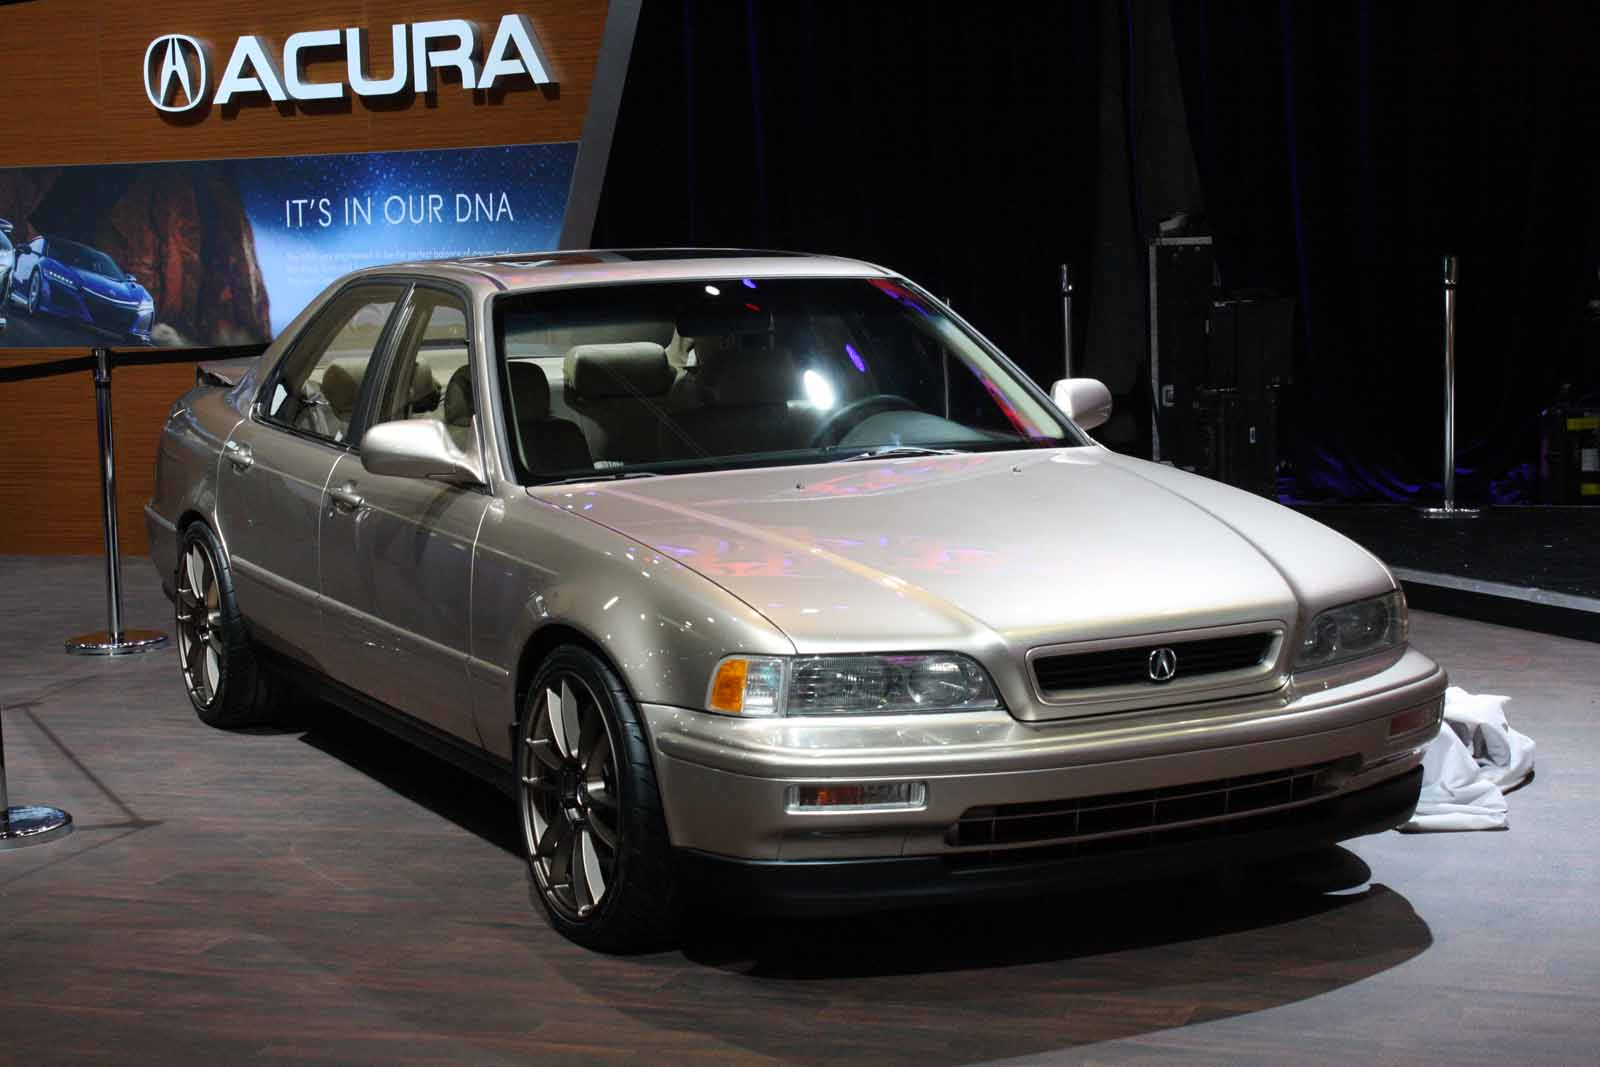 15 Gallery of Acura Legend 2020 Exterior with Acura Legend 2020